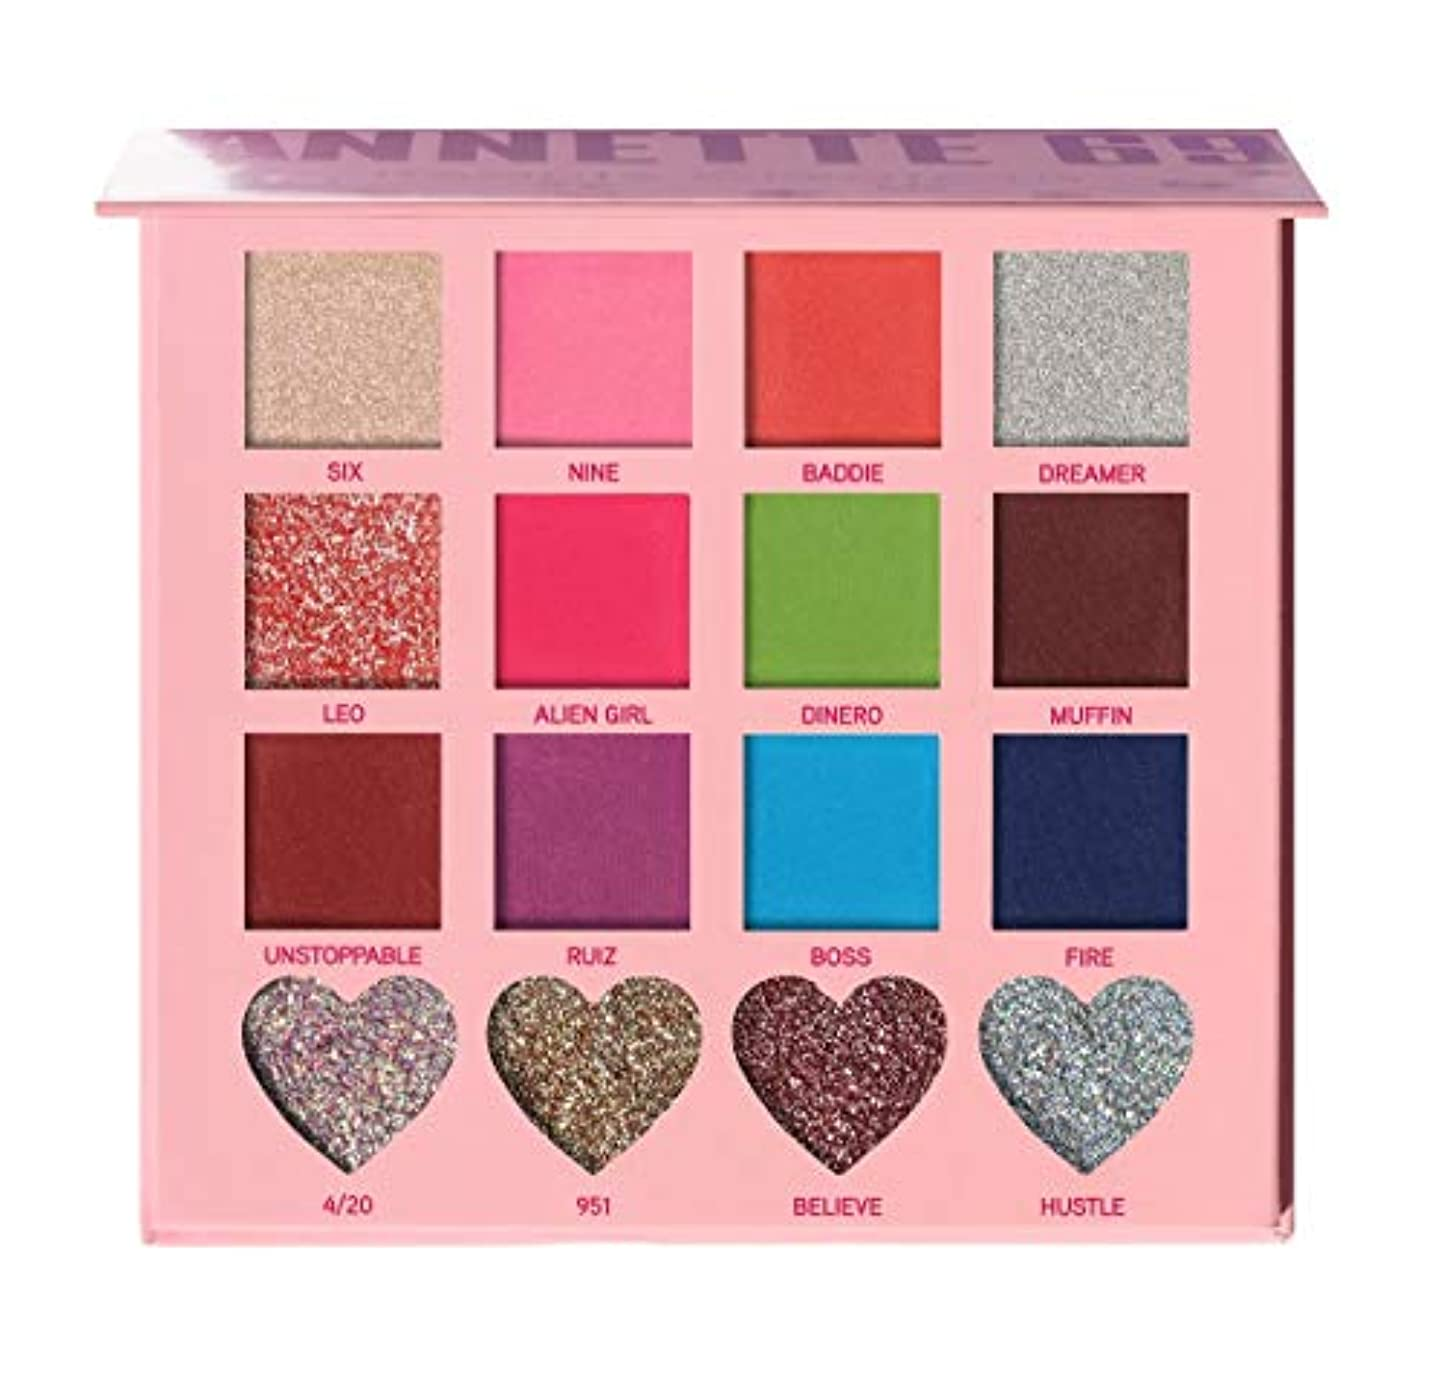 掃くワードローブ含むBEAUTY CREATIONS x Annette 69 Eyeshadow Palette (並行輸入品)